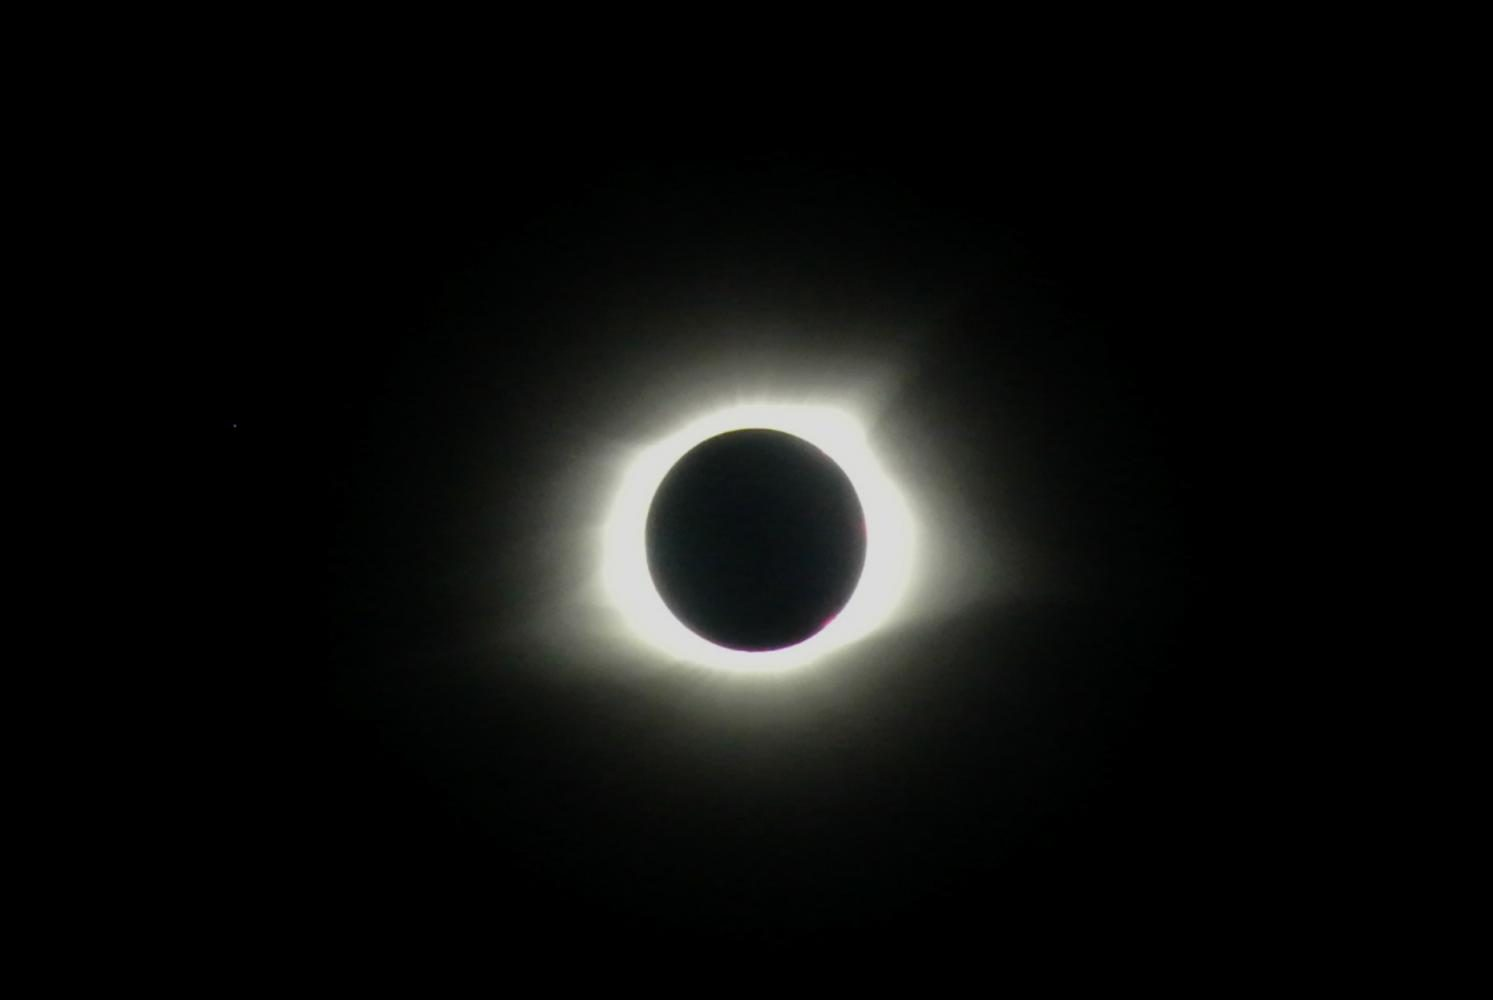 The total solar eclipse in reached totality at 1:21 p.m. and lasted for two minutes and forty seconds in Carbondale, IL.